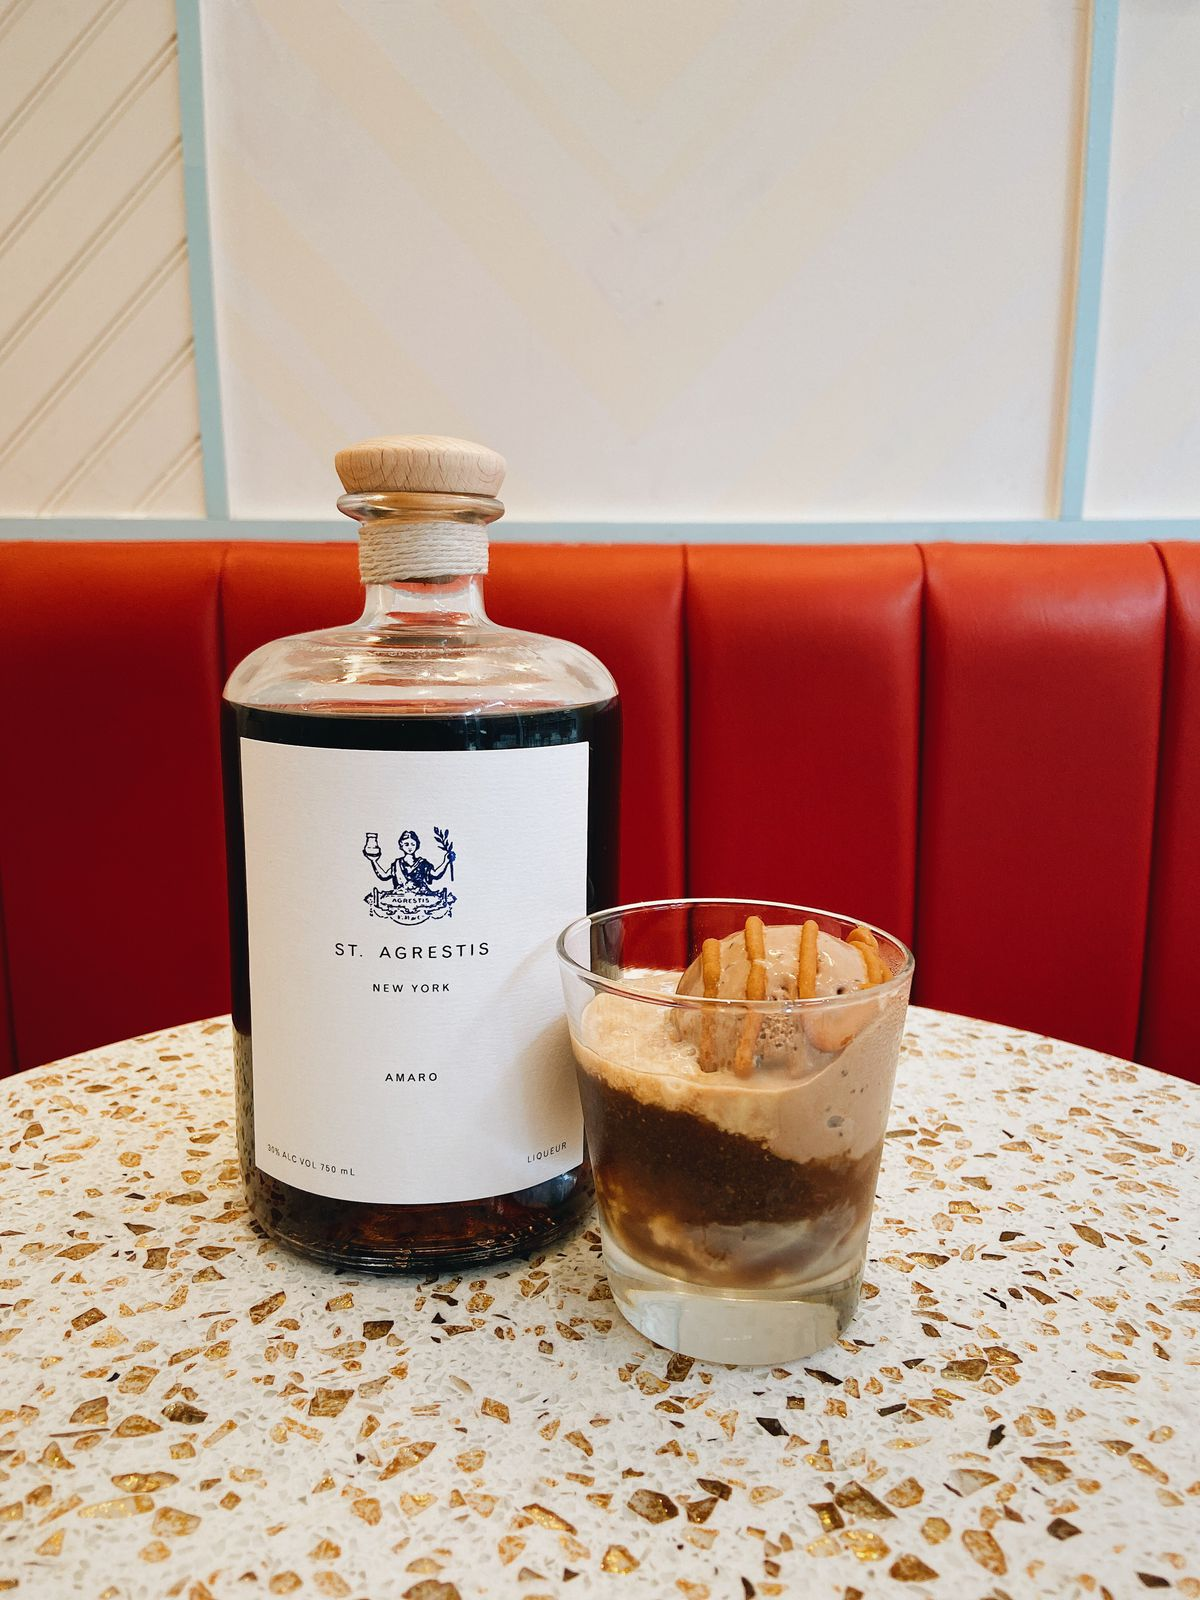 A bottle of dark brown amaro sits next to a cup of tan ice cream drizzled with salted caramel sauce